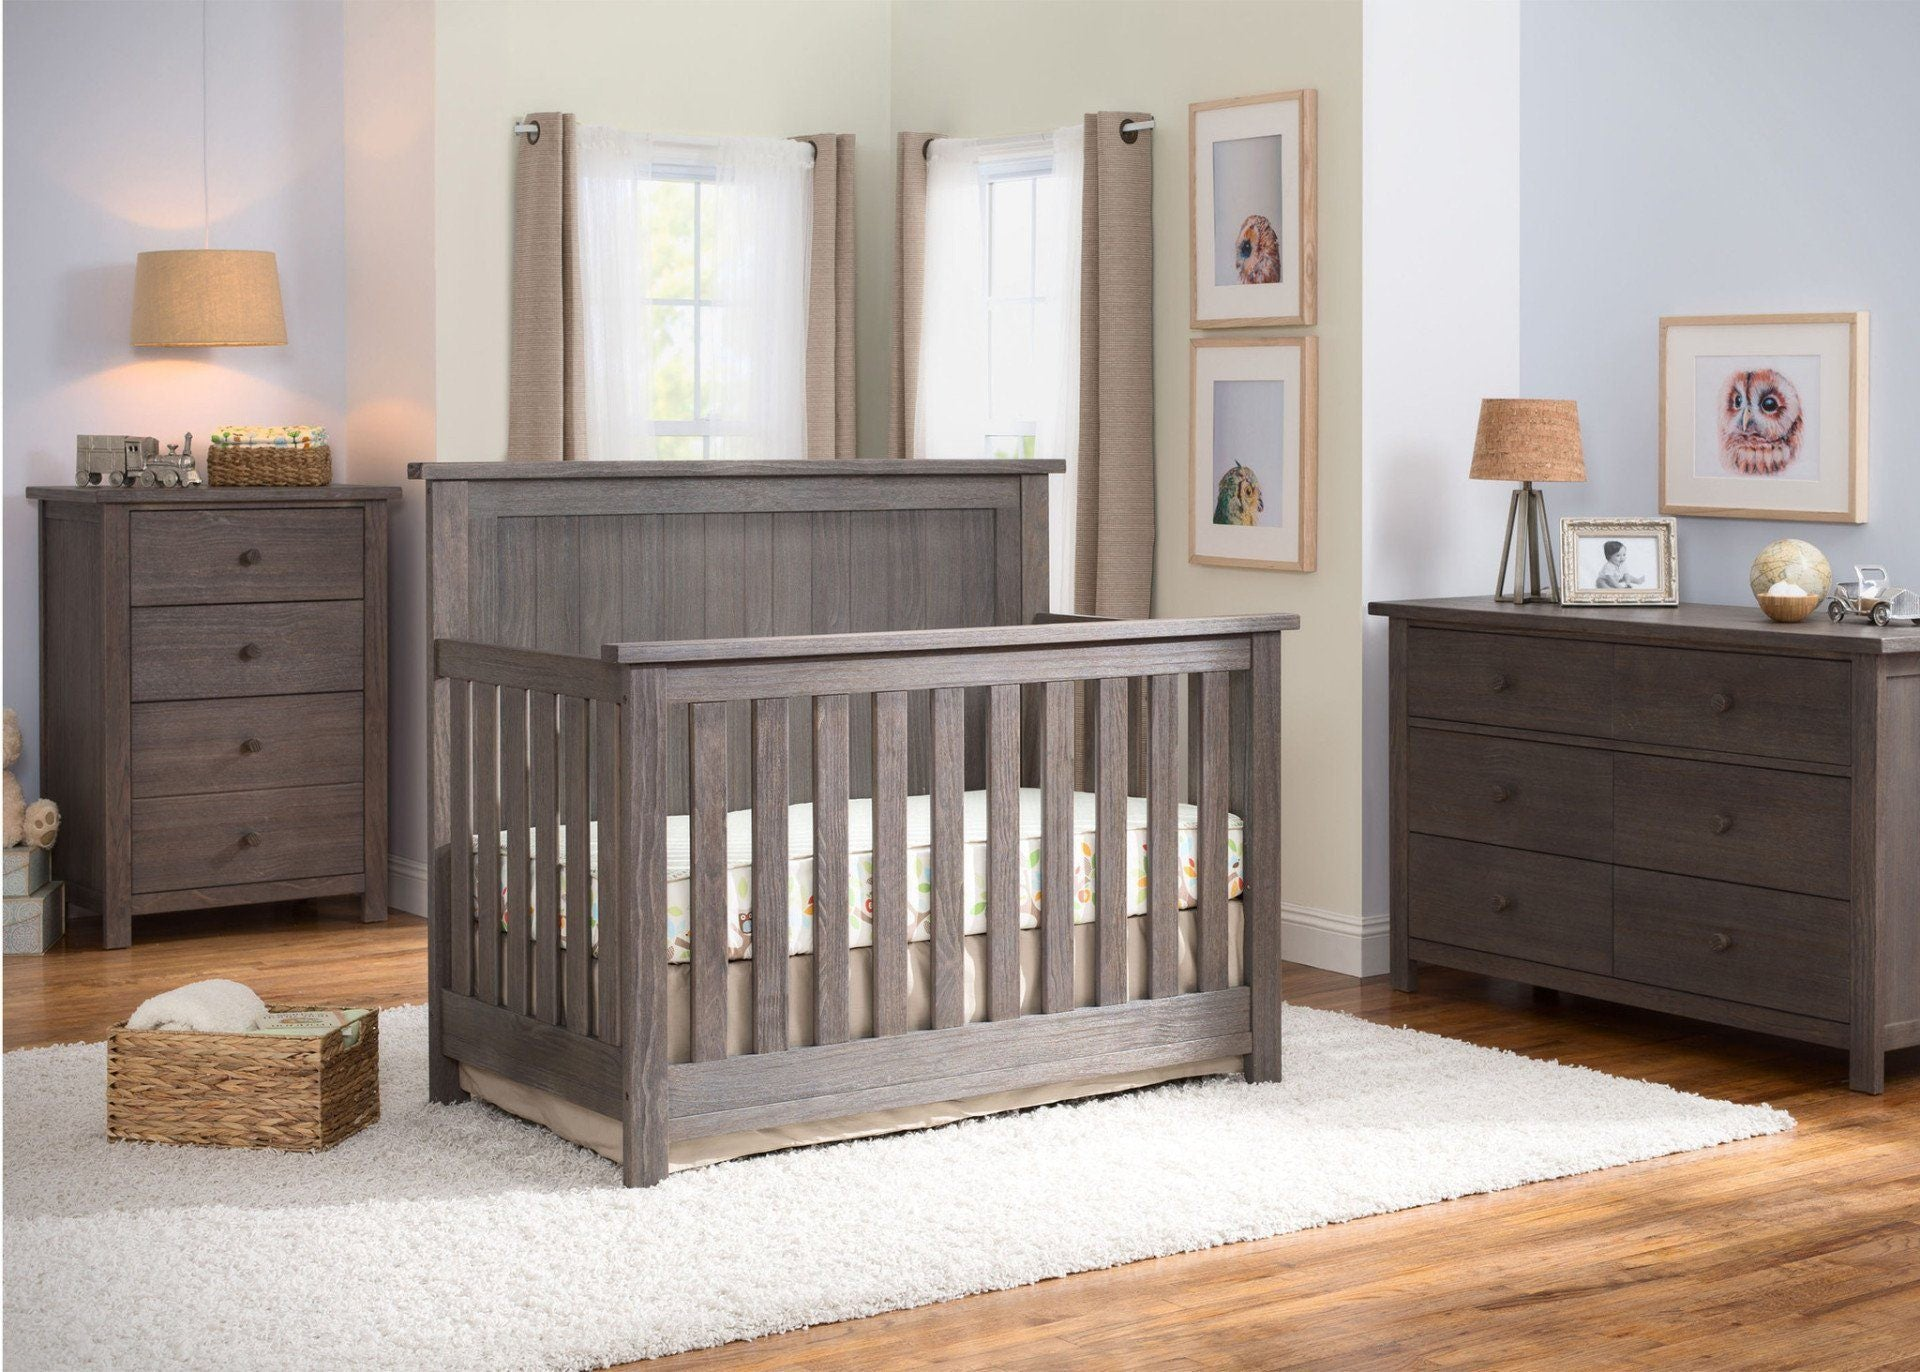 Northbrook 4 In 1 Crib Delta Children